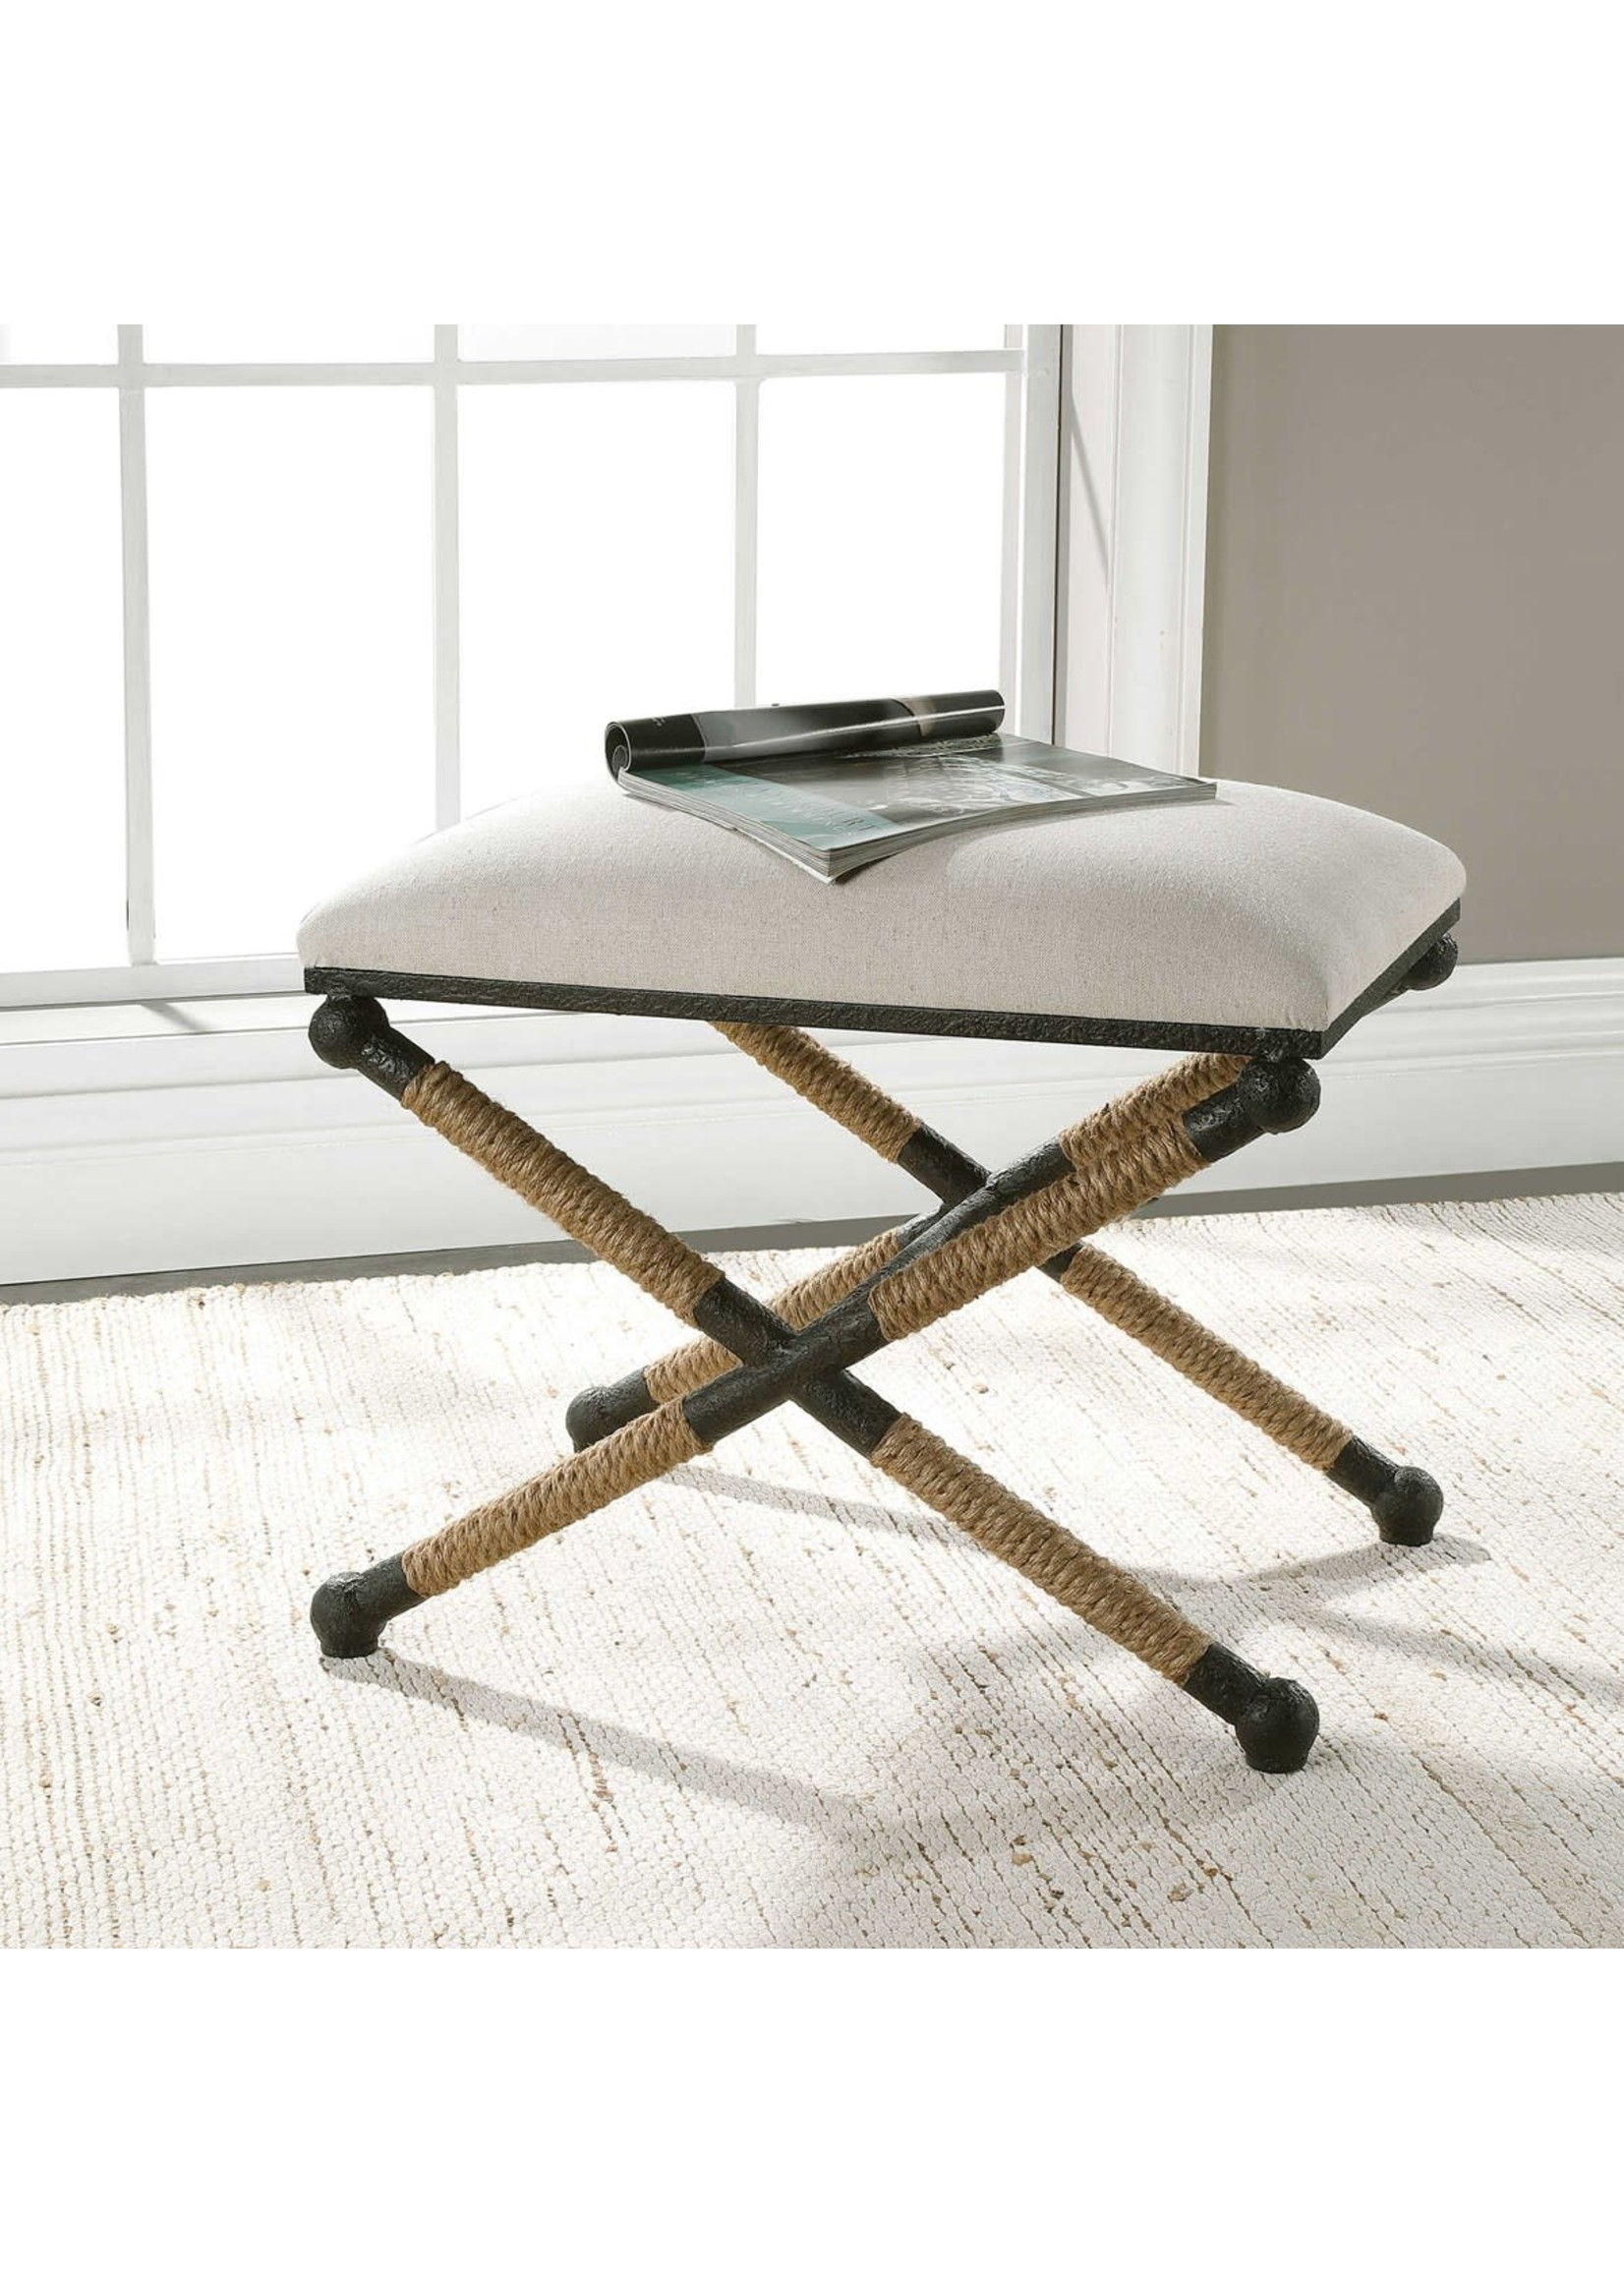 FIRTH SMALL BENCH